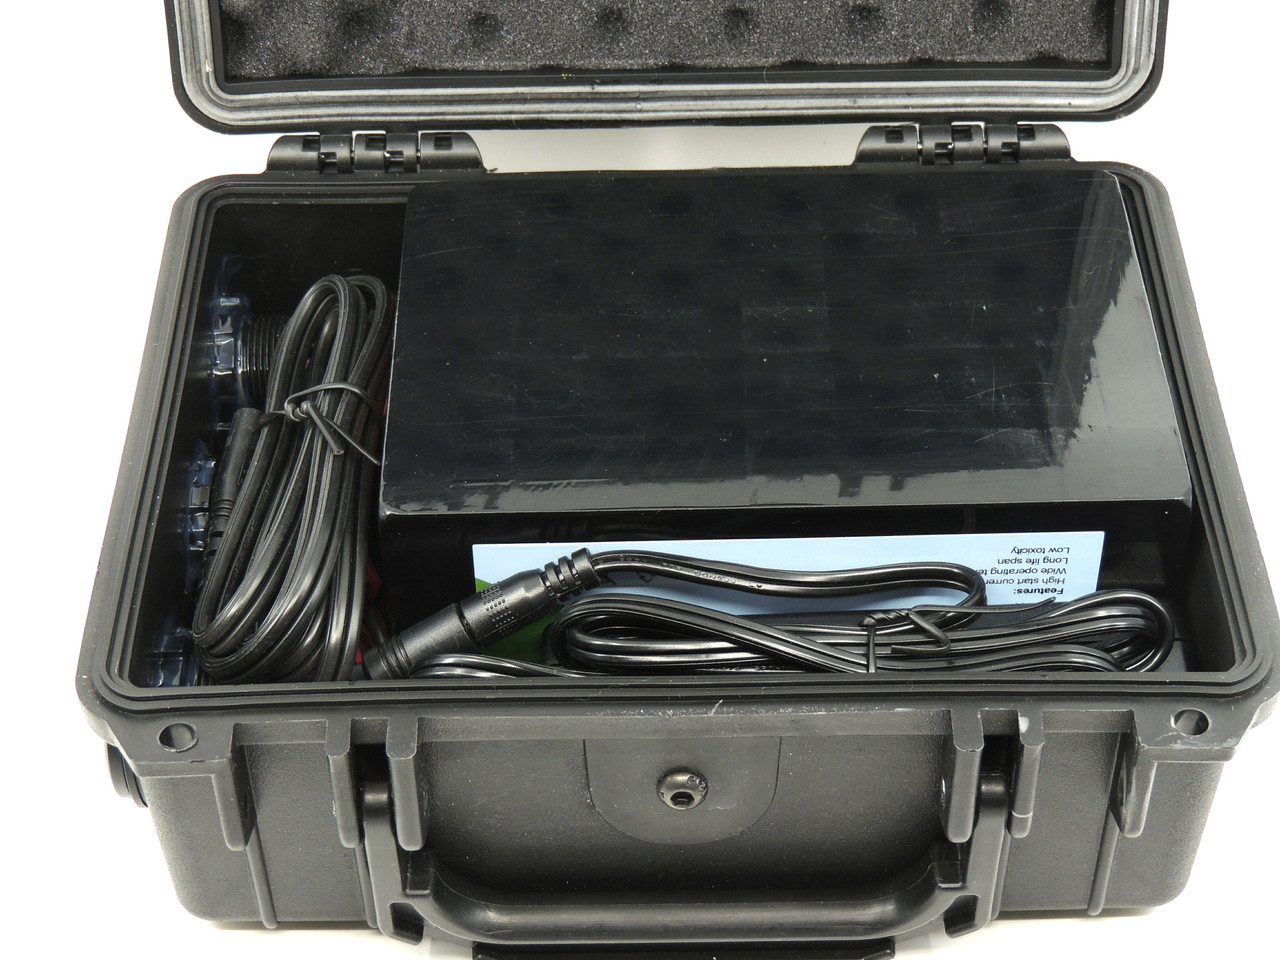 DC12 MITY-T4-S150 GO-BOX for LiFePO4 Battery and Charger